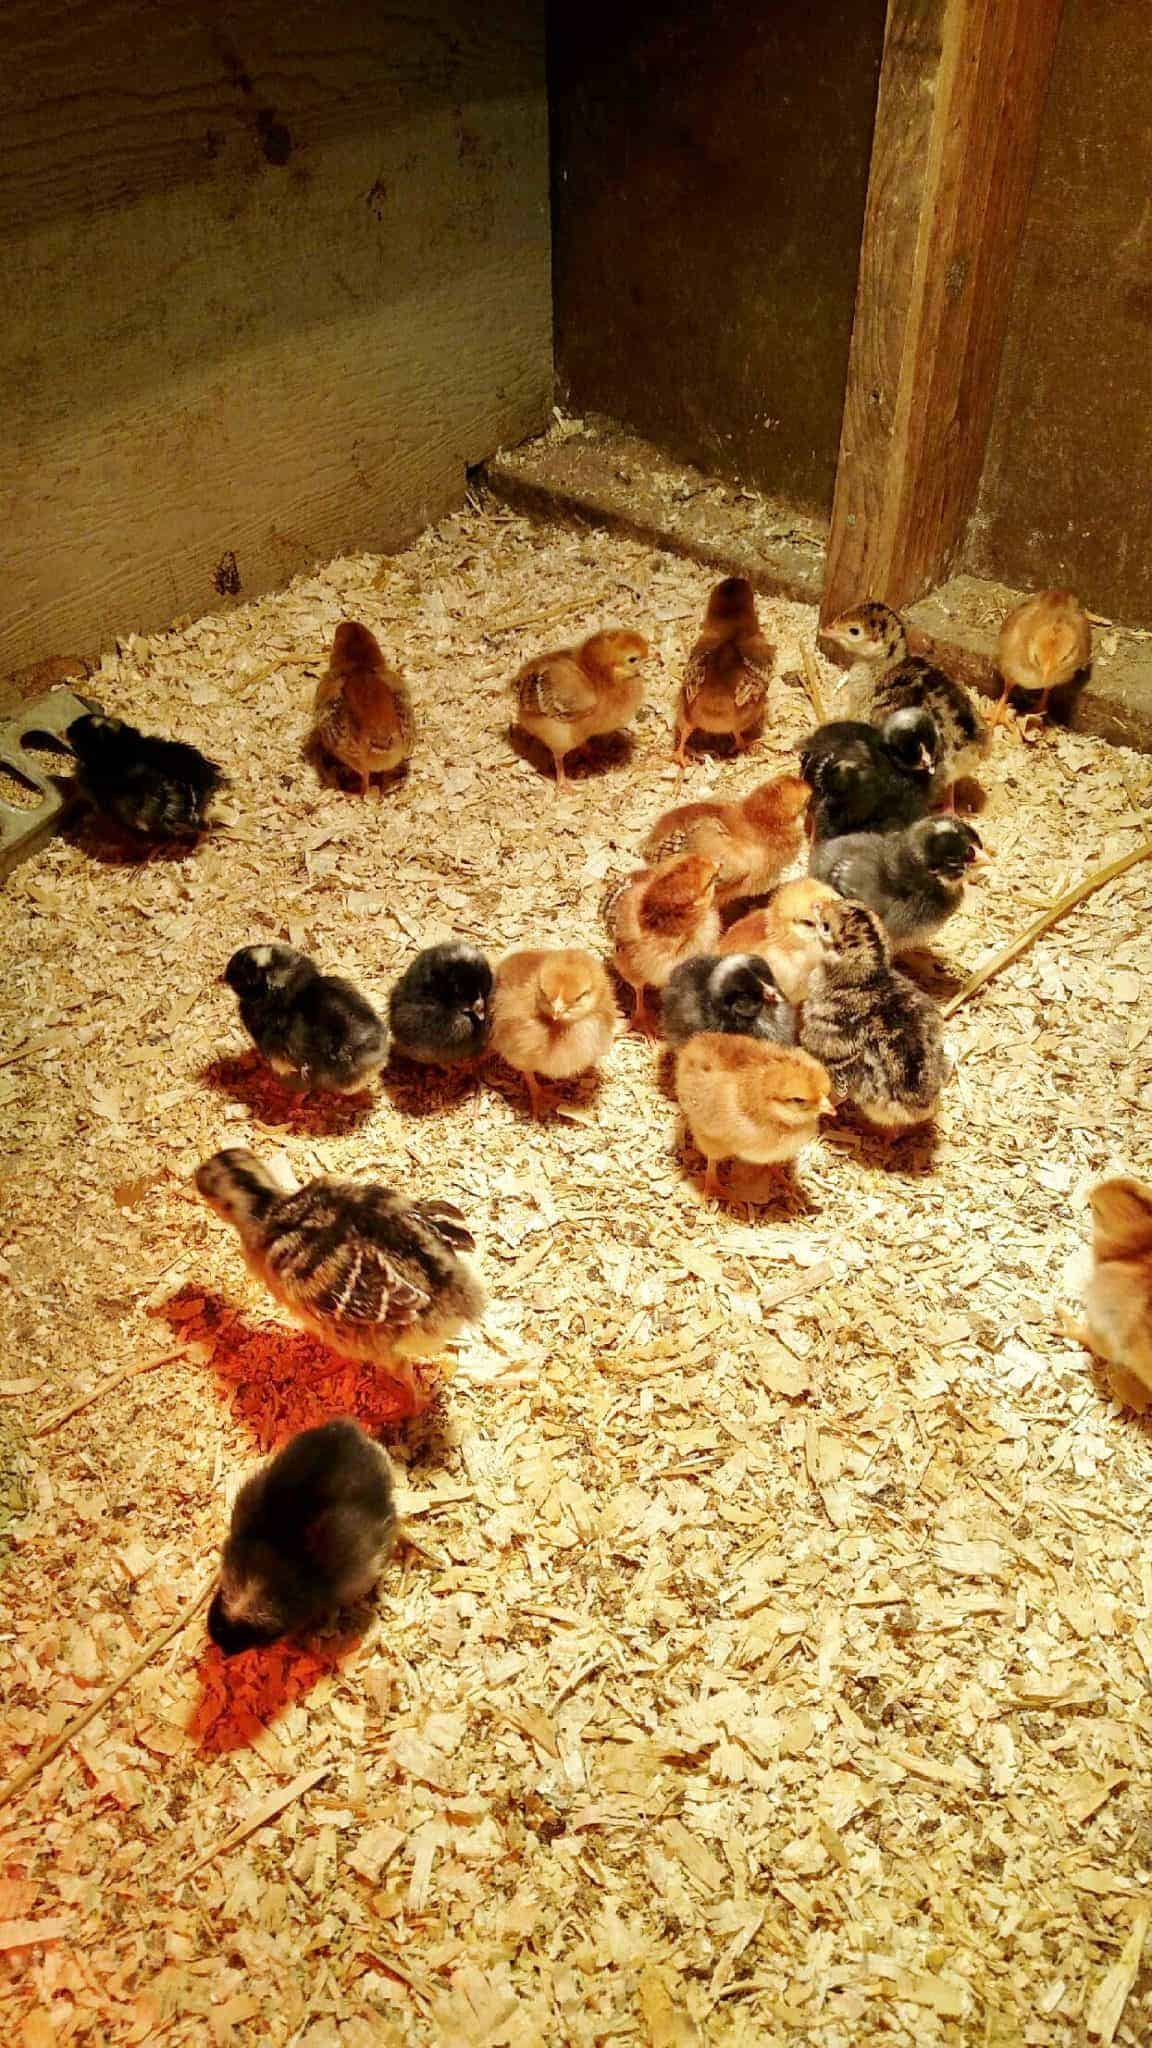 Baby chickens in a small coop.